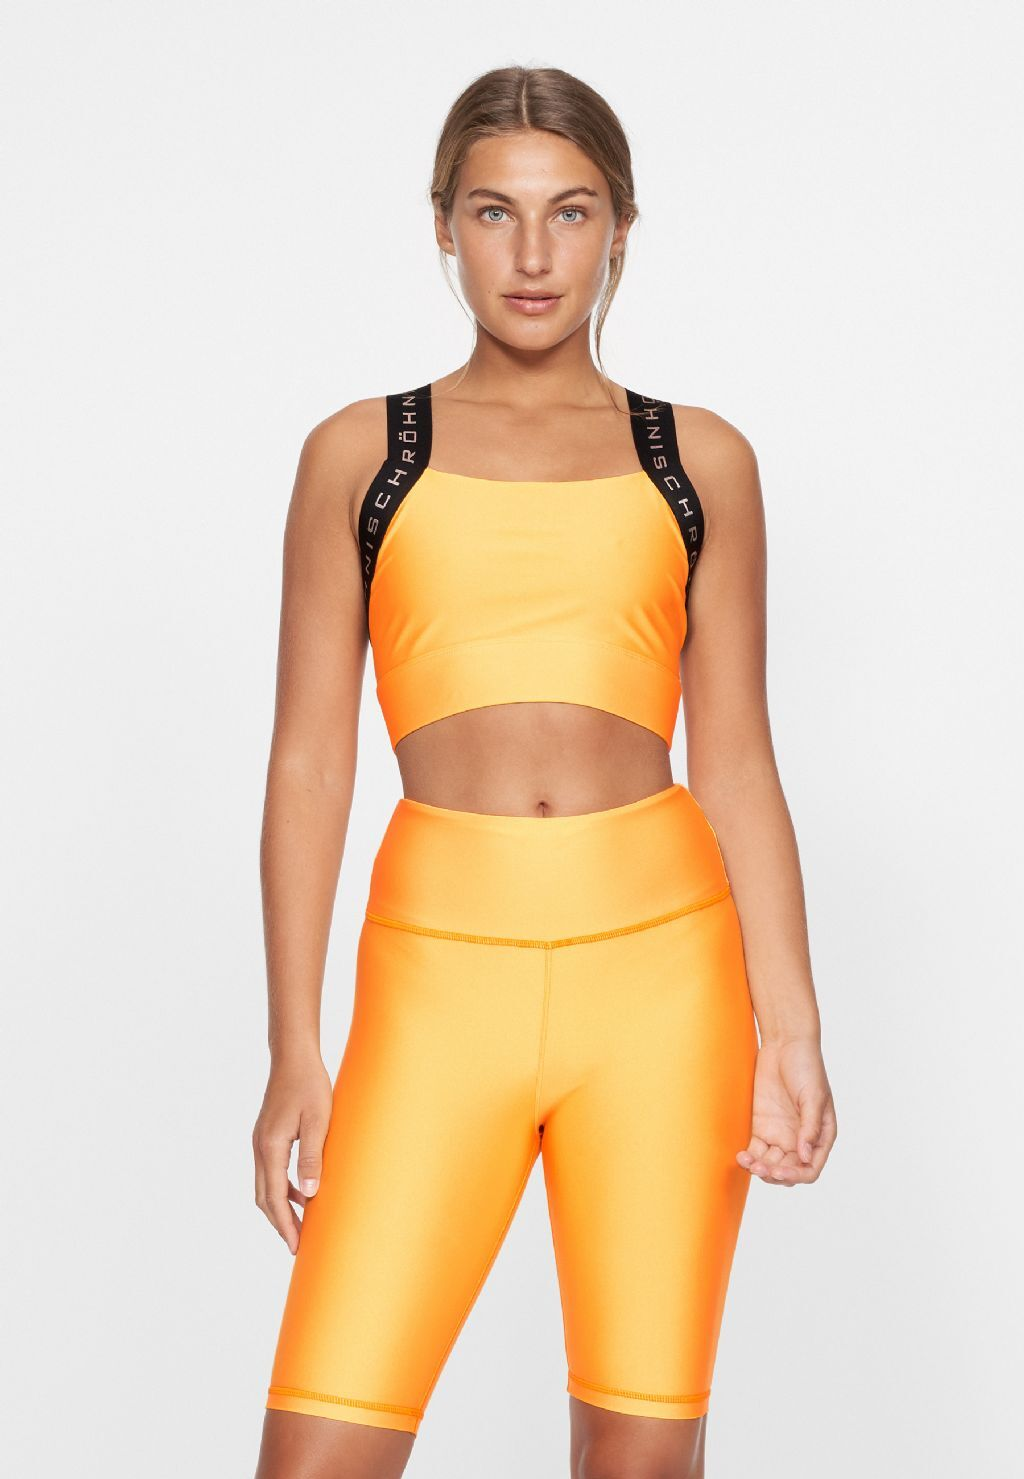 Röhnisch Shiny Kay Sports Bra